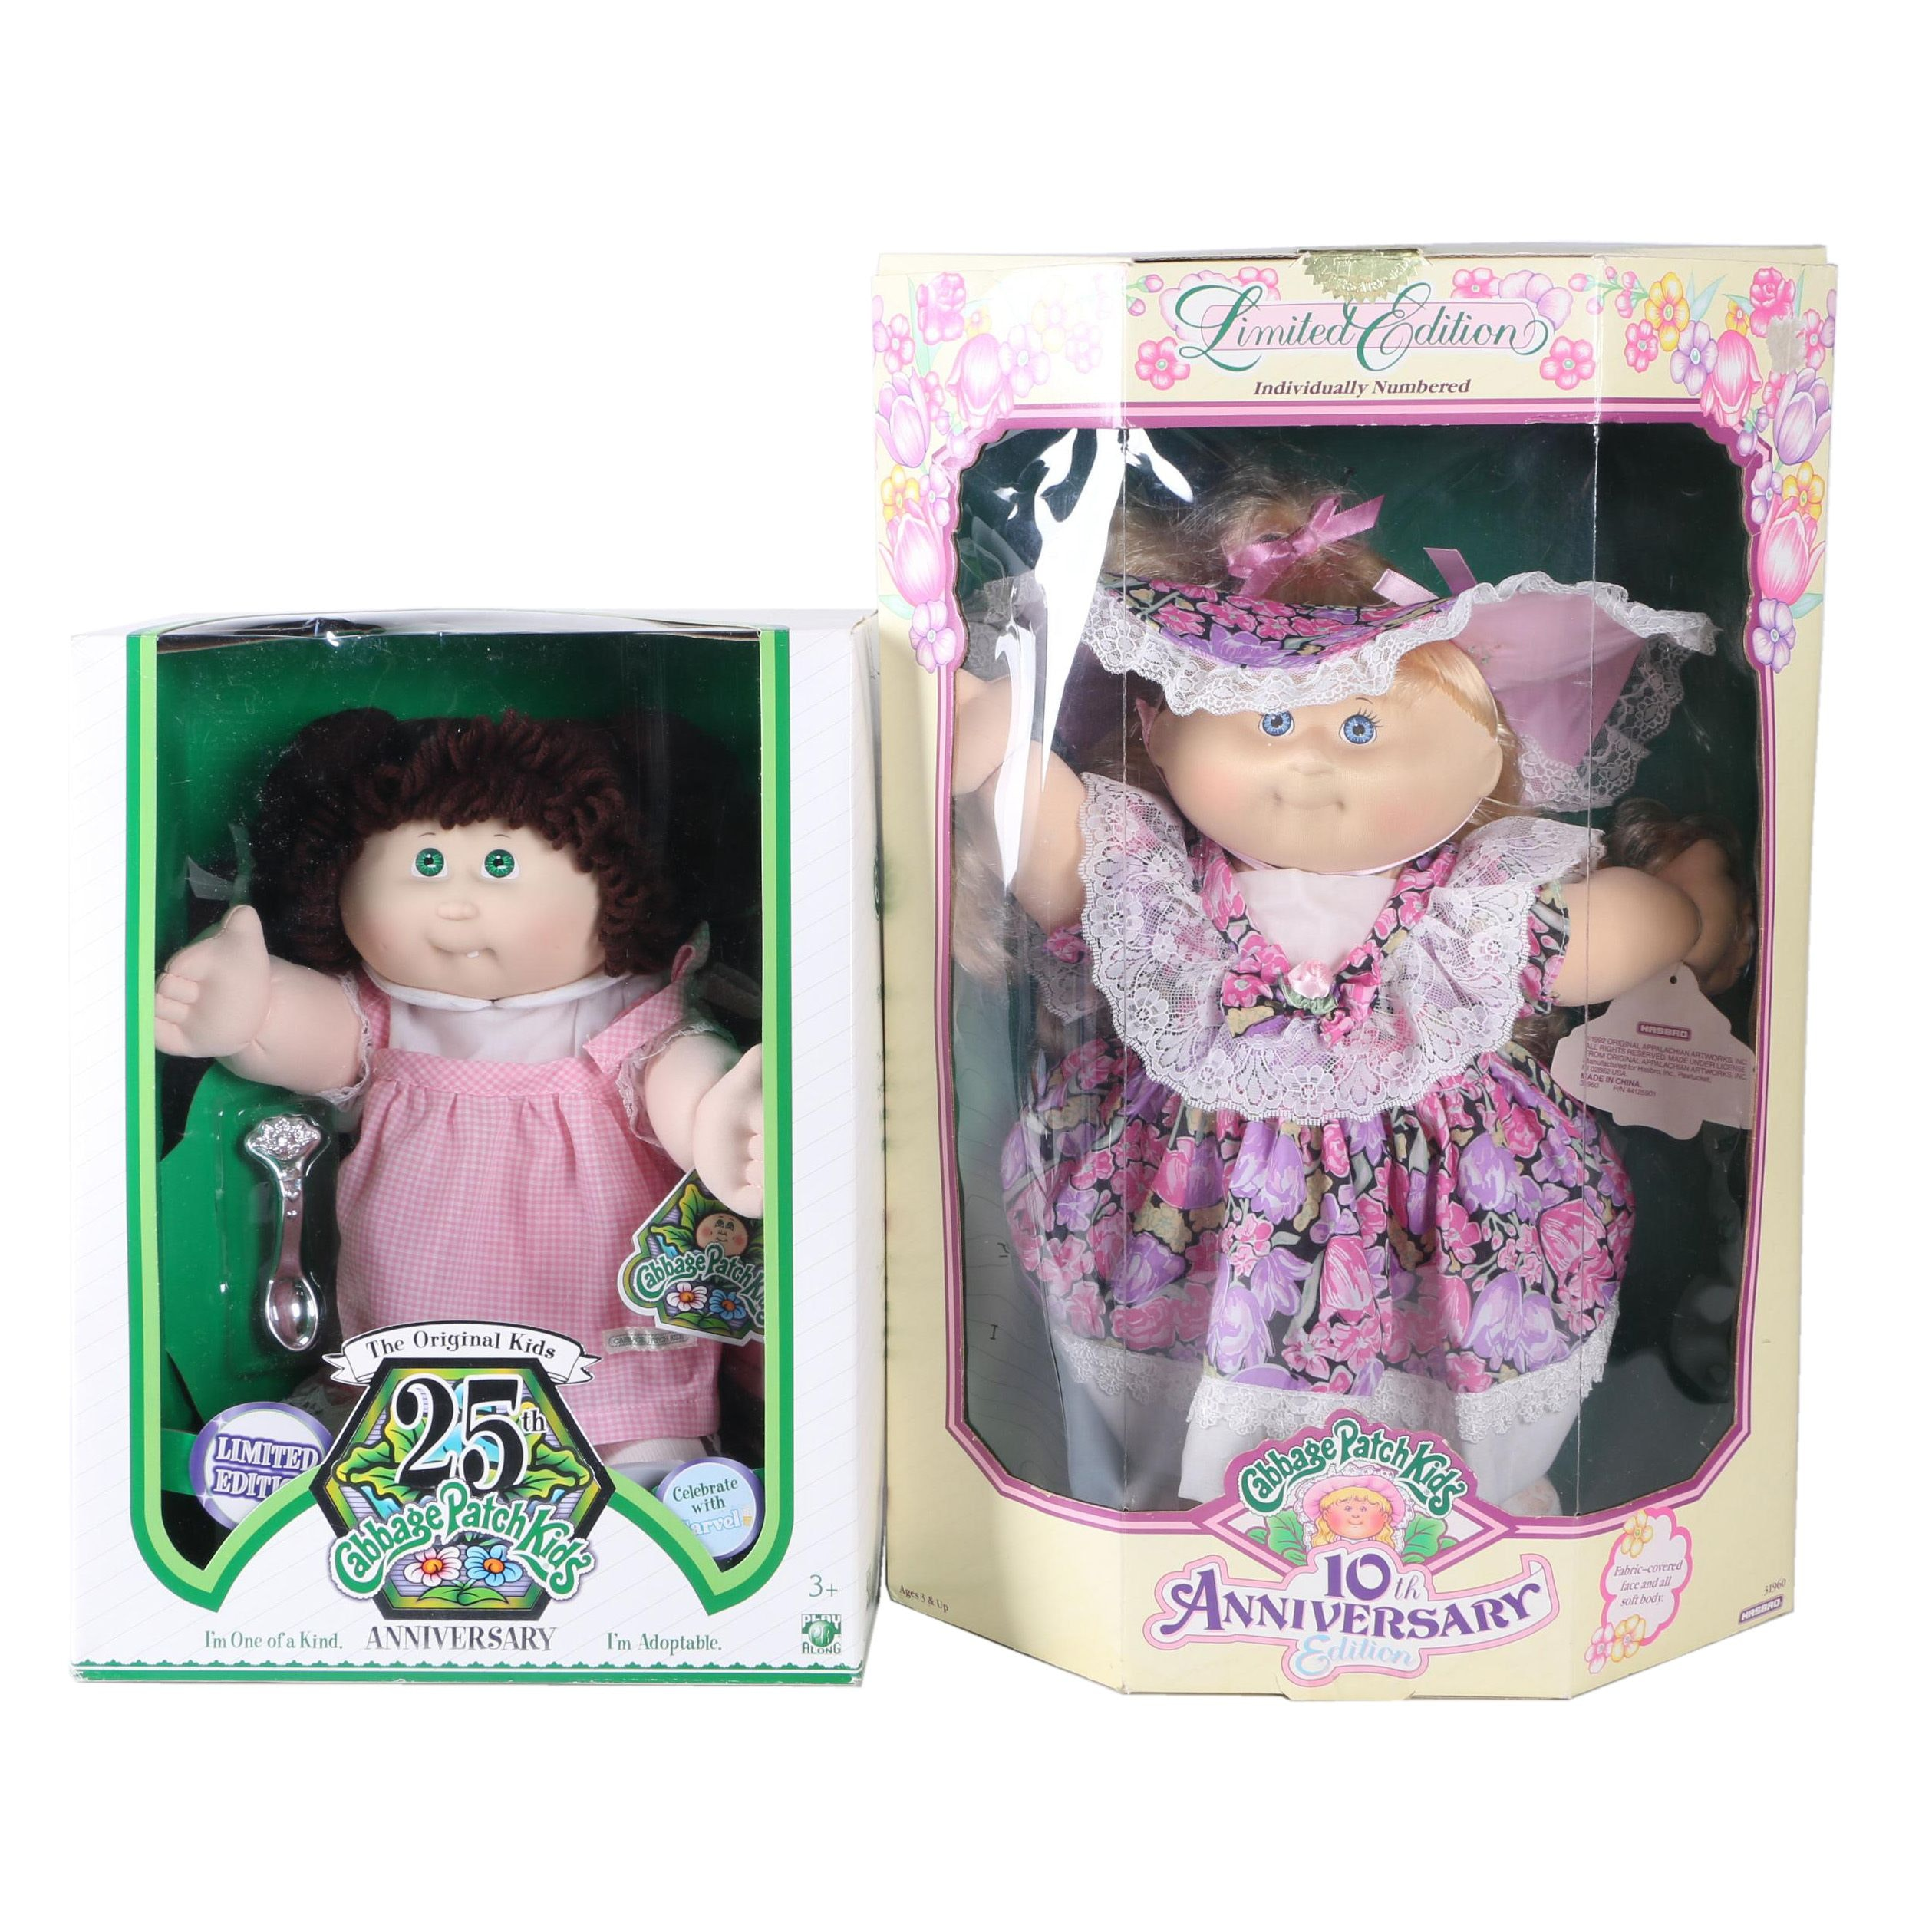 Limited Edition Anniversary Cabbage Patch Kids Dolls